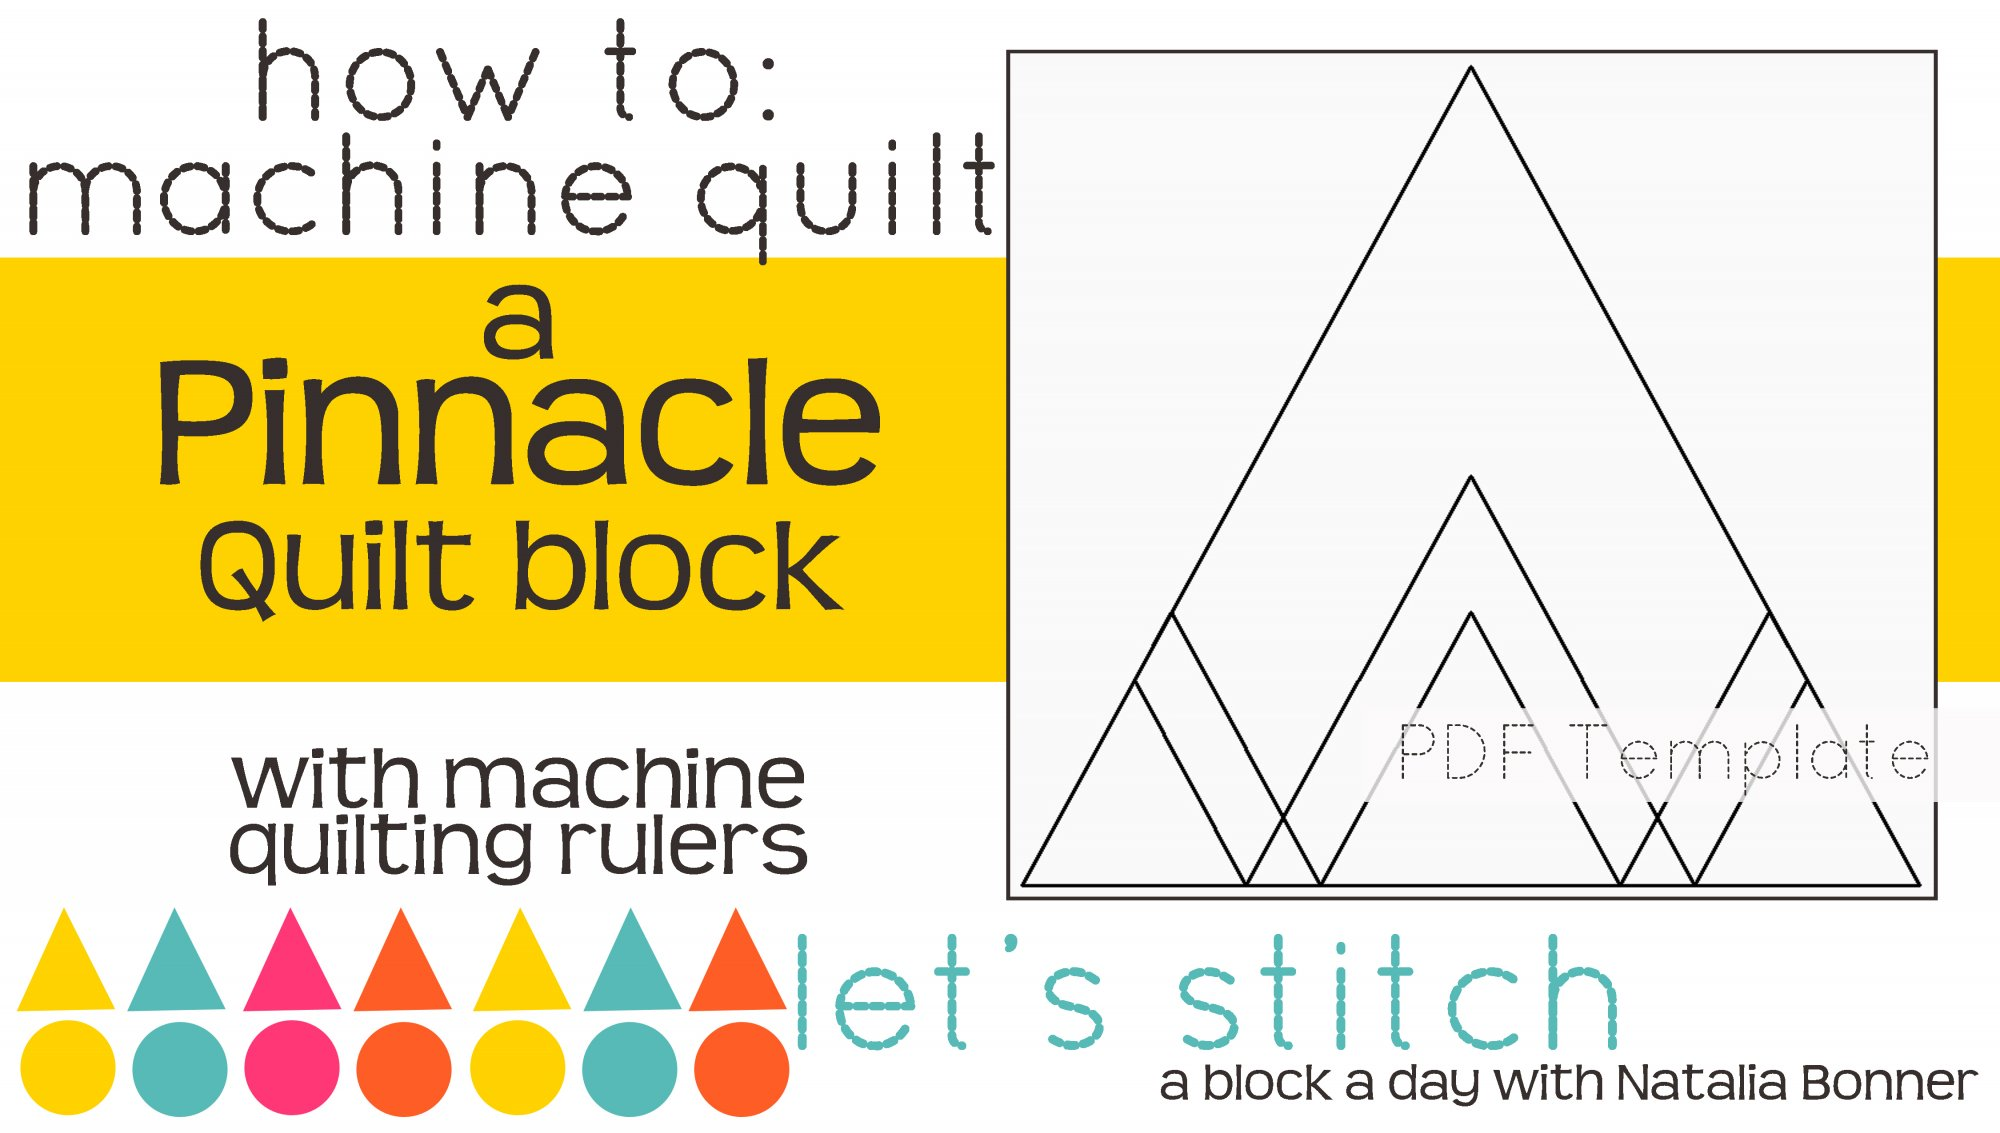 Let's Stitch - A Block a Day With Natalia Bonner - PDF - Pinnacle